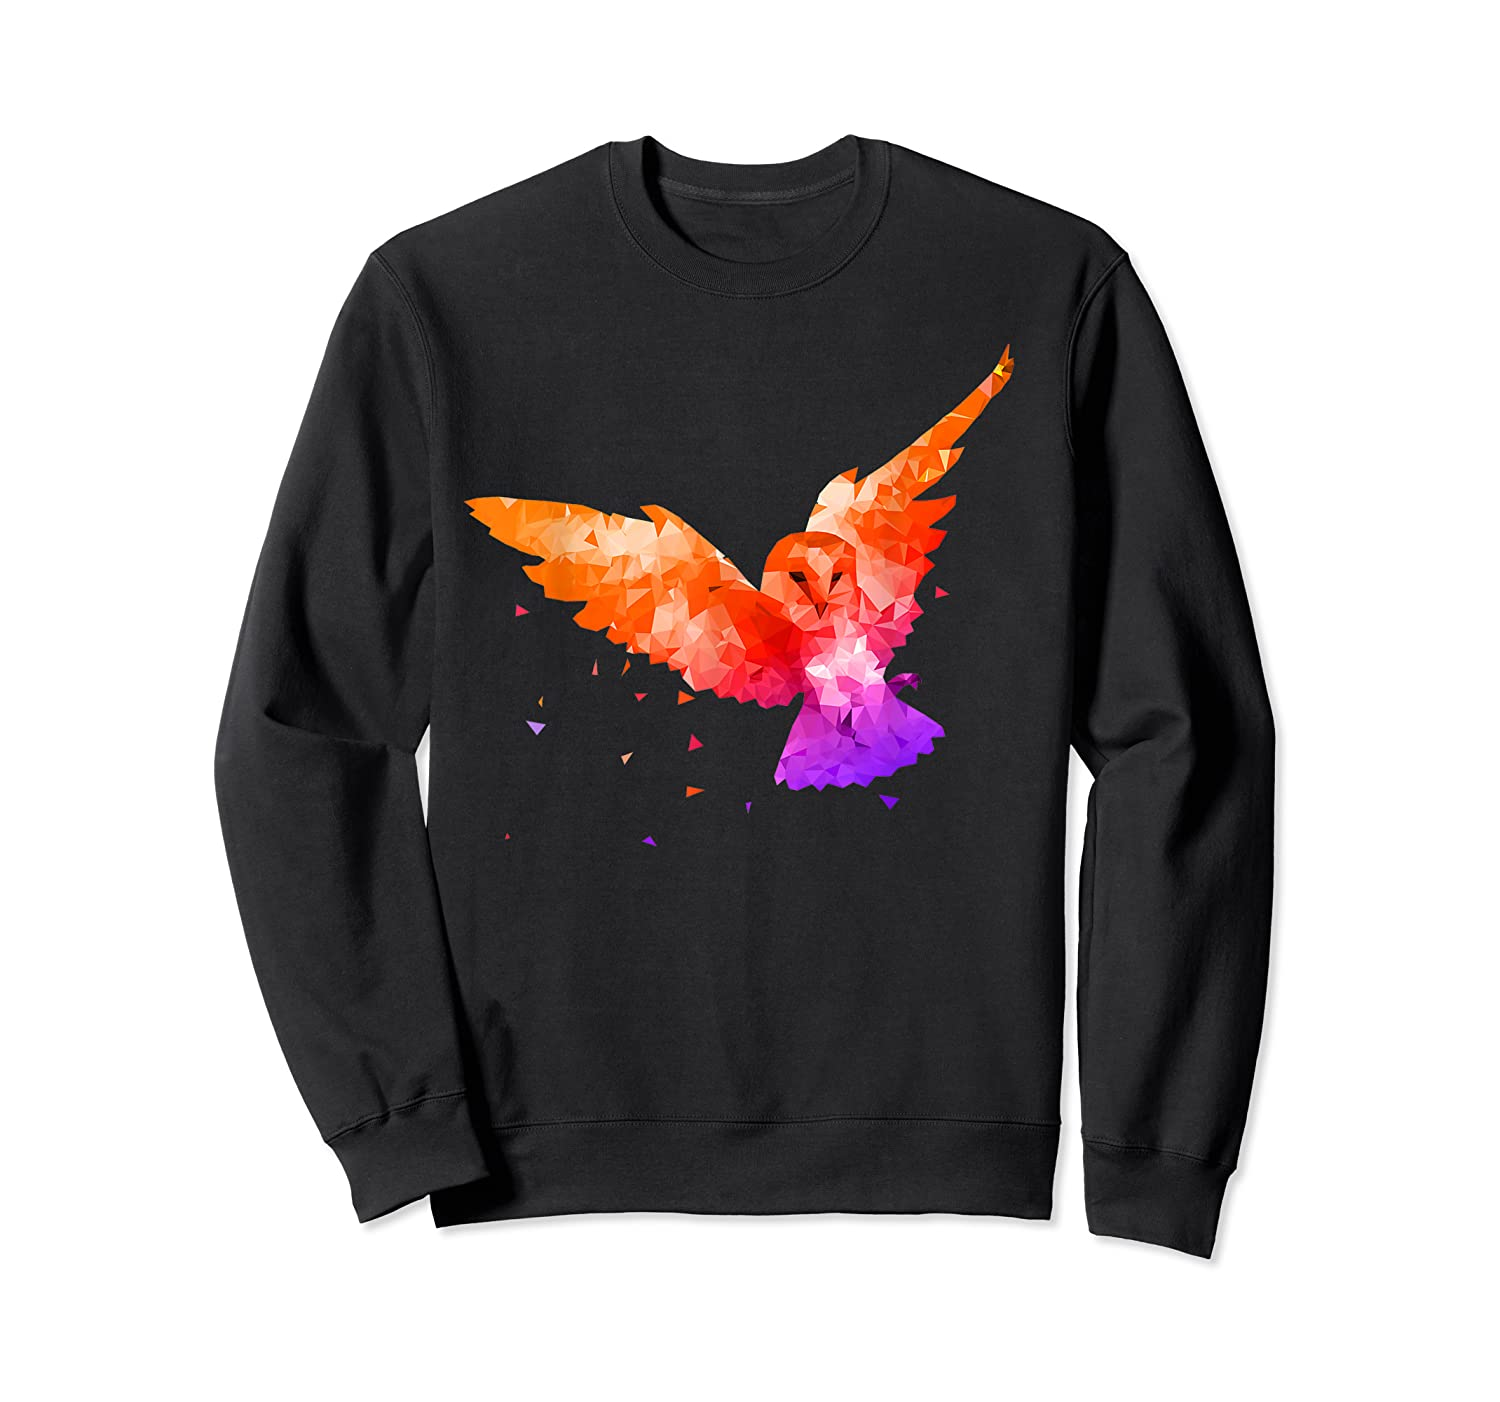 Flying Owl In Low Poly Style T Shirt Design Crewneck Sweater